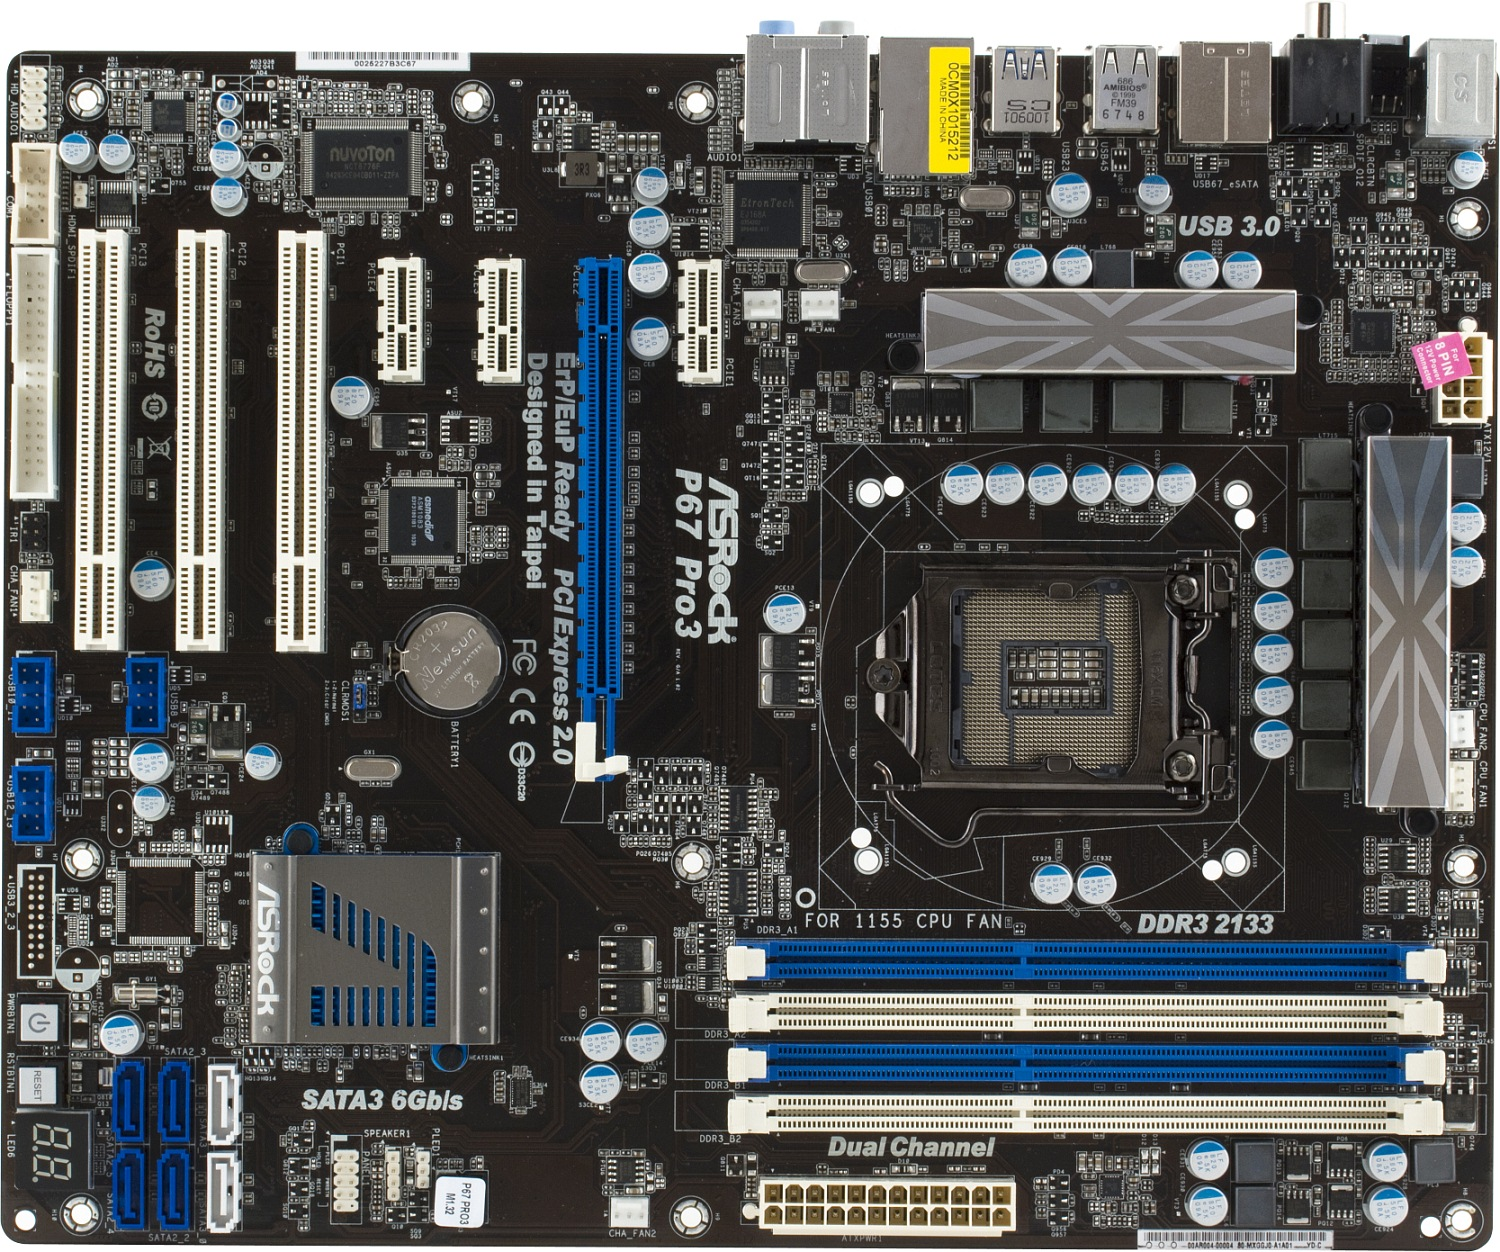 Ixbt Labs Asrock P67 Pro3 B3 Motherboard Page 1